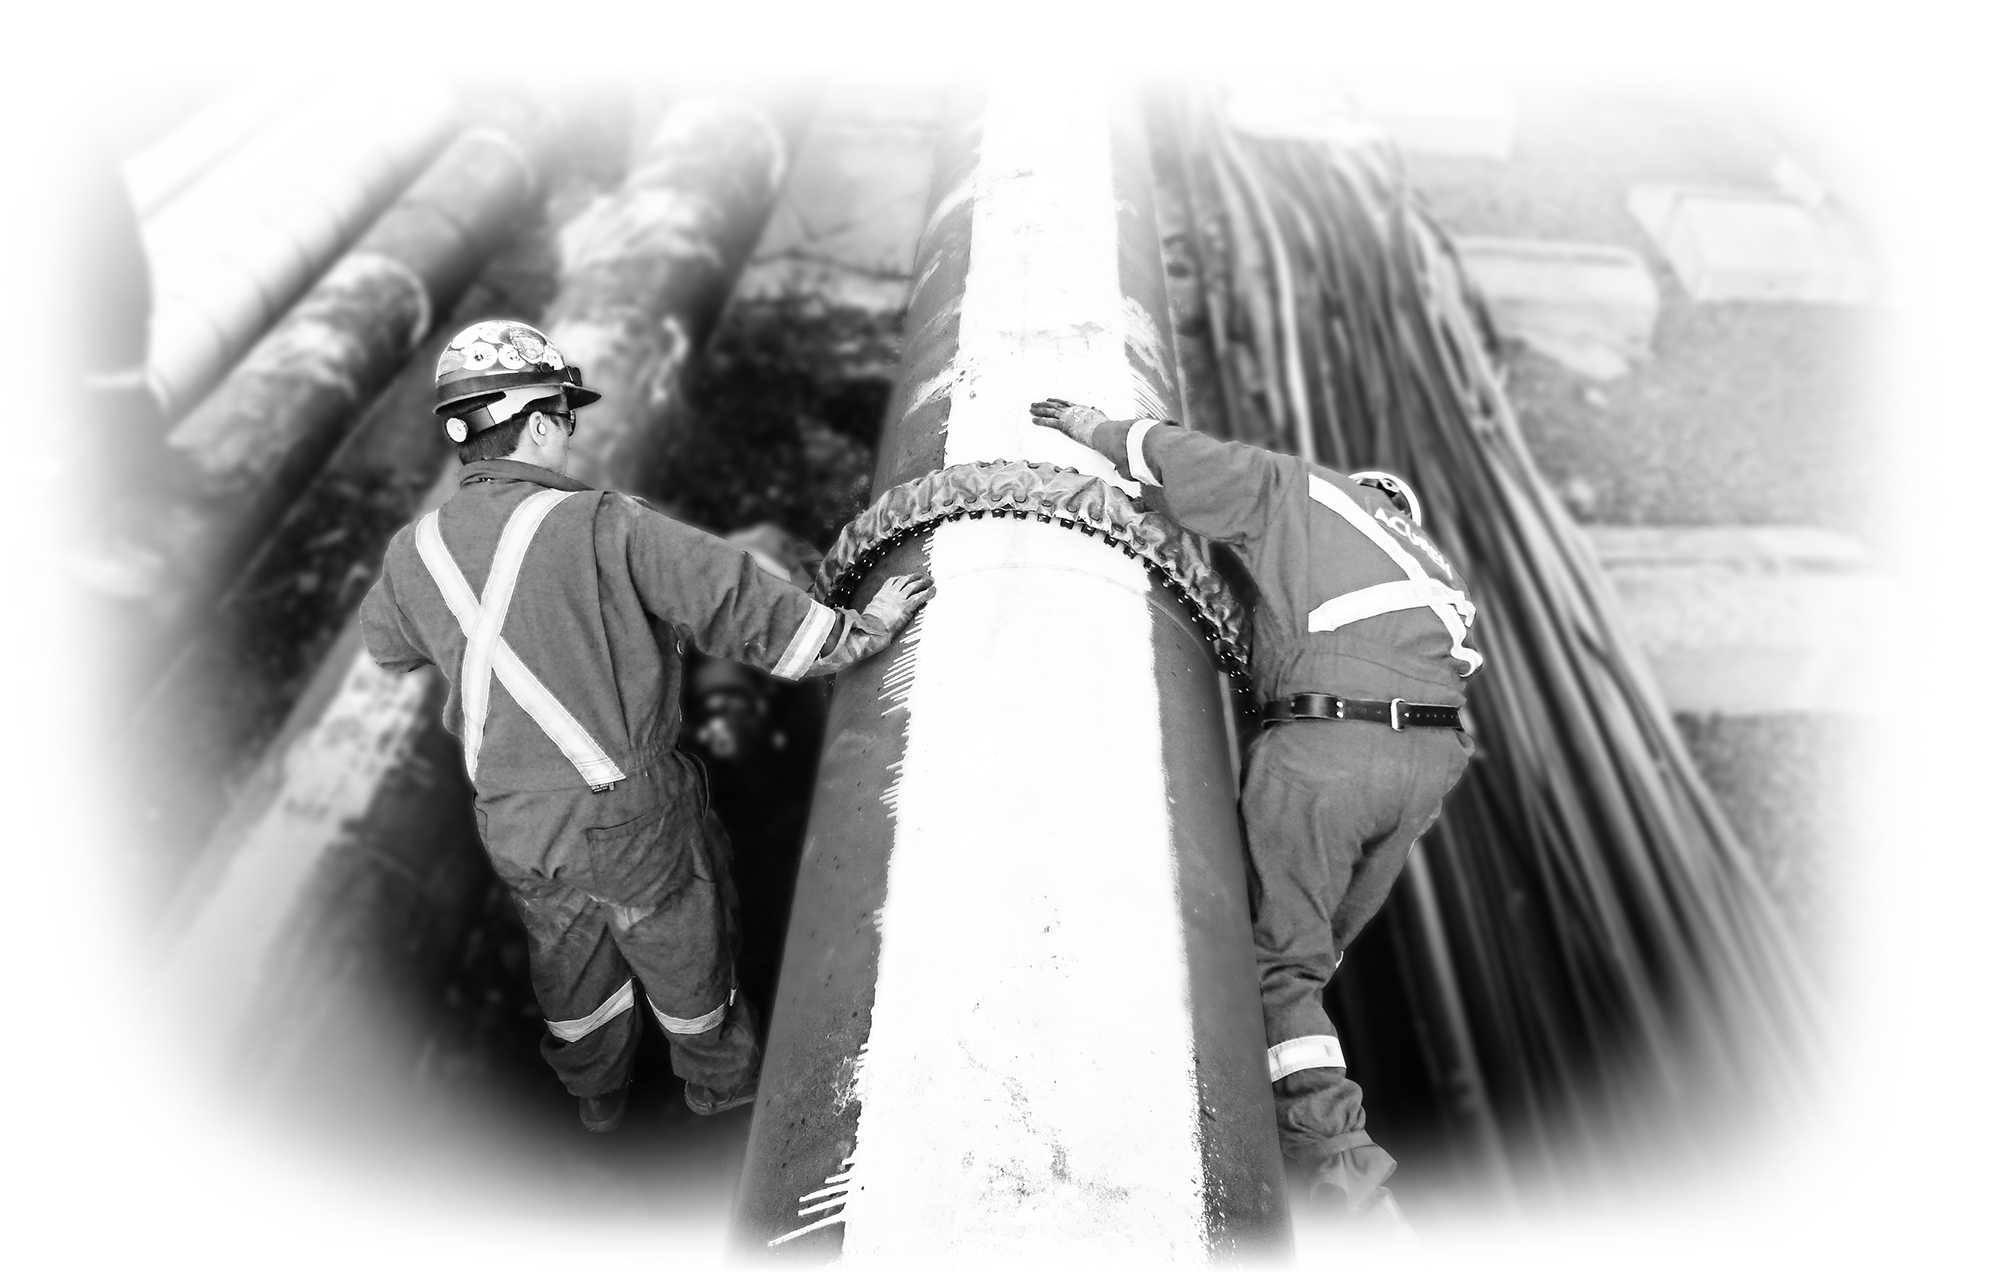 Setting up GUL on large pipe